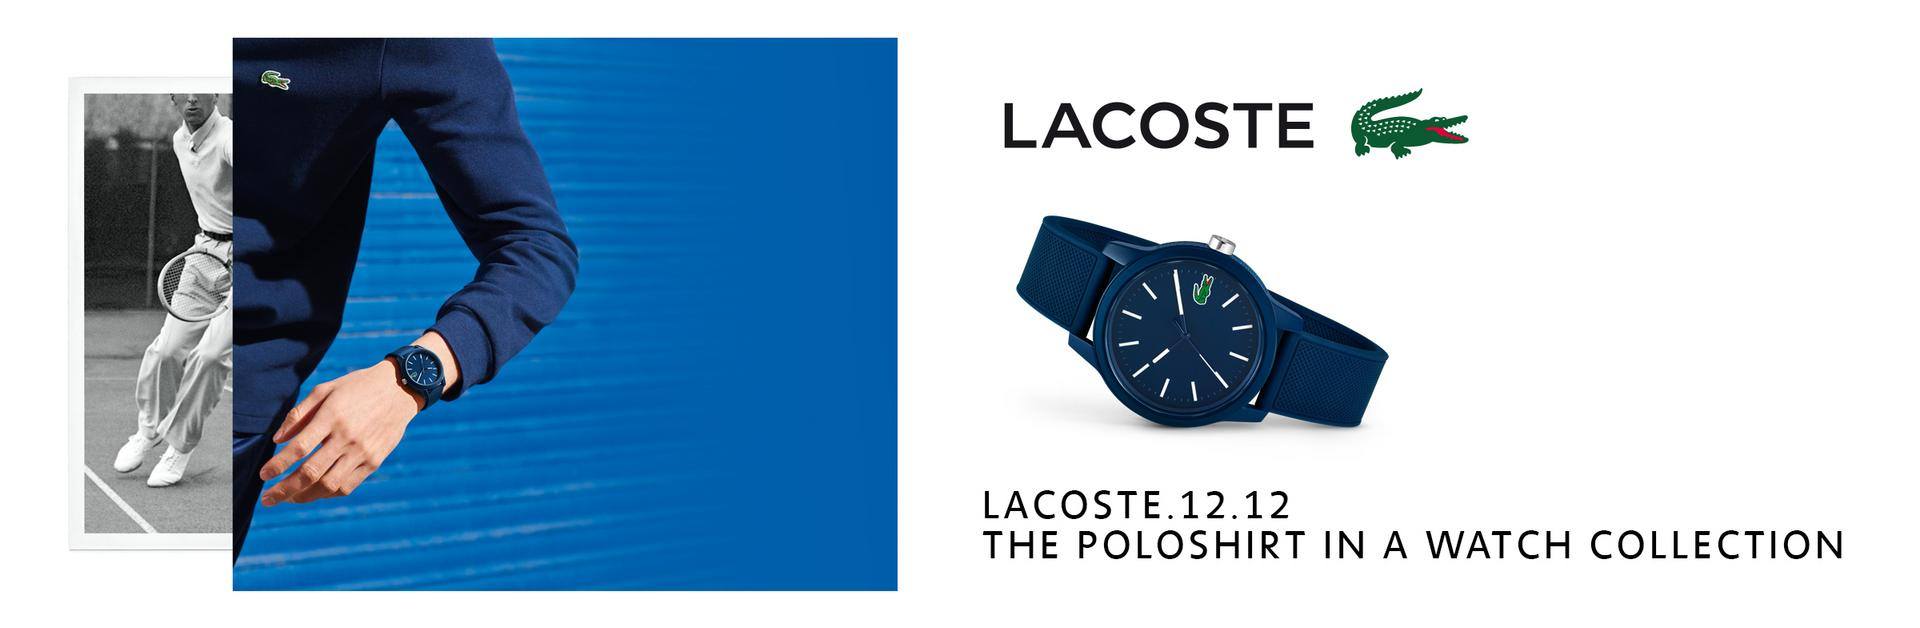 Lacoste Watches - Shop Now